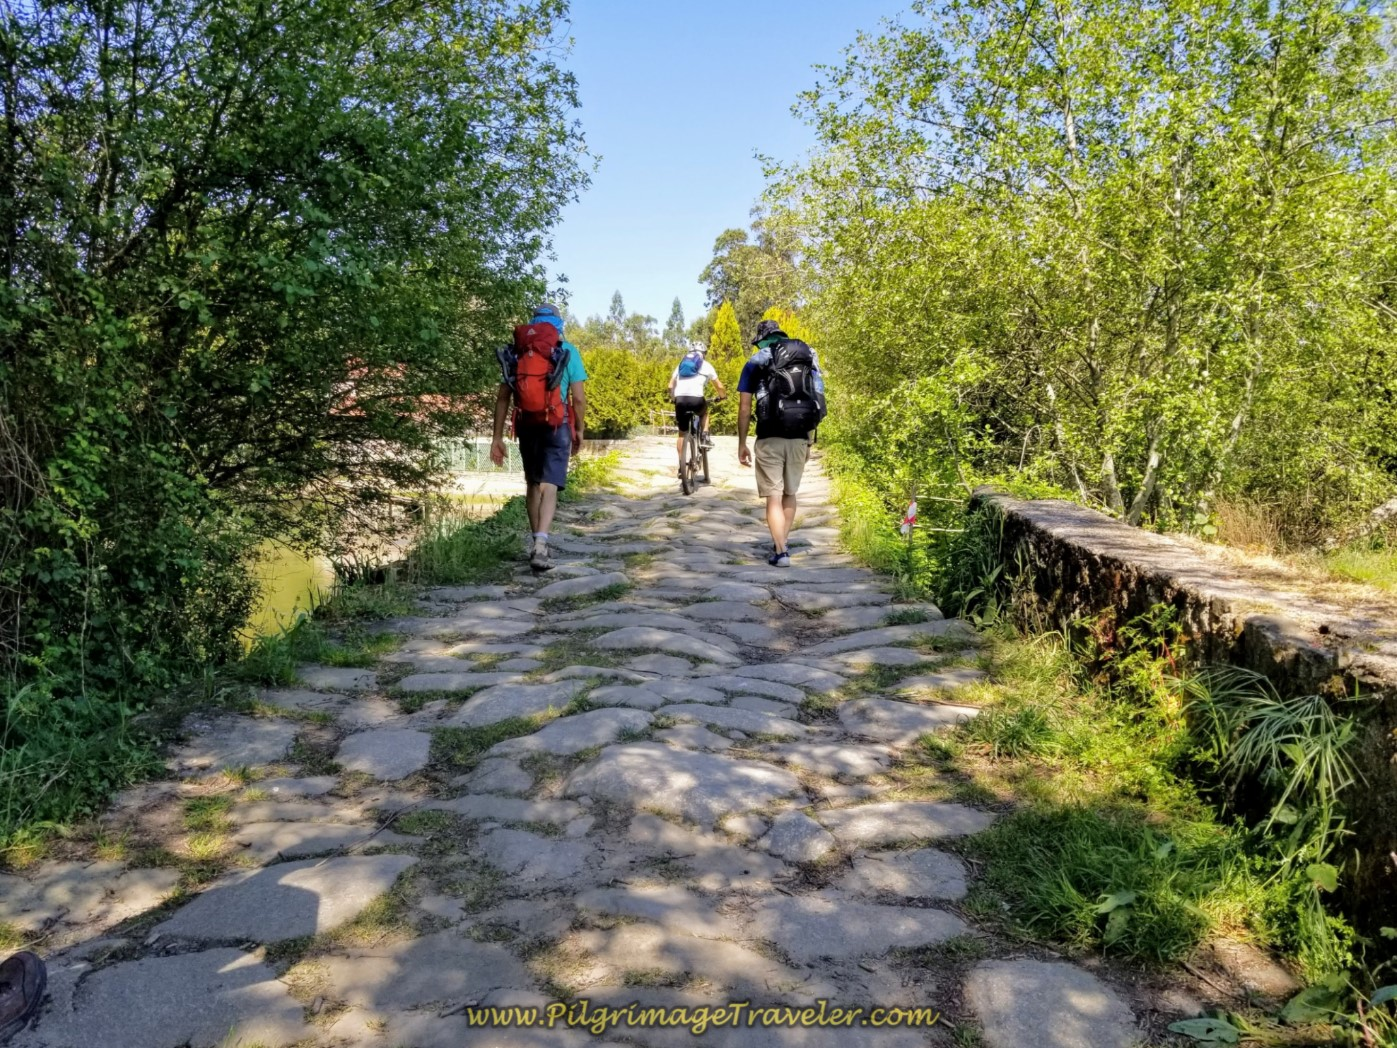 Crossing the Ponte Das Tábuas ~ Roman Bridge near Balugães on day seventeen on the Central Route of the Portuguese Camino